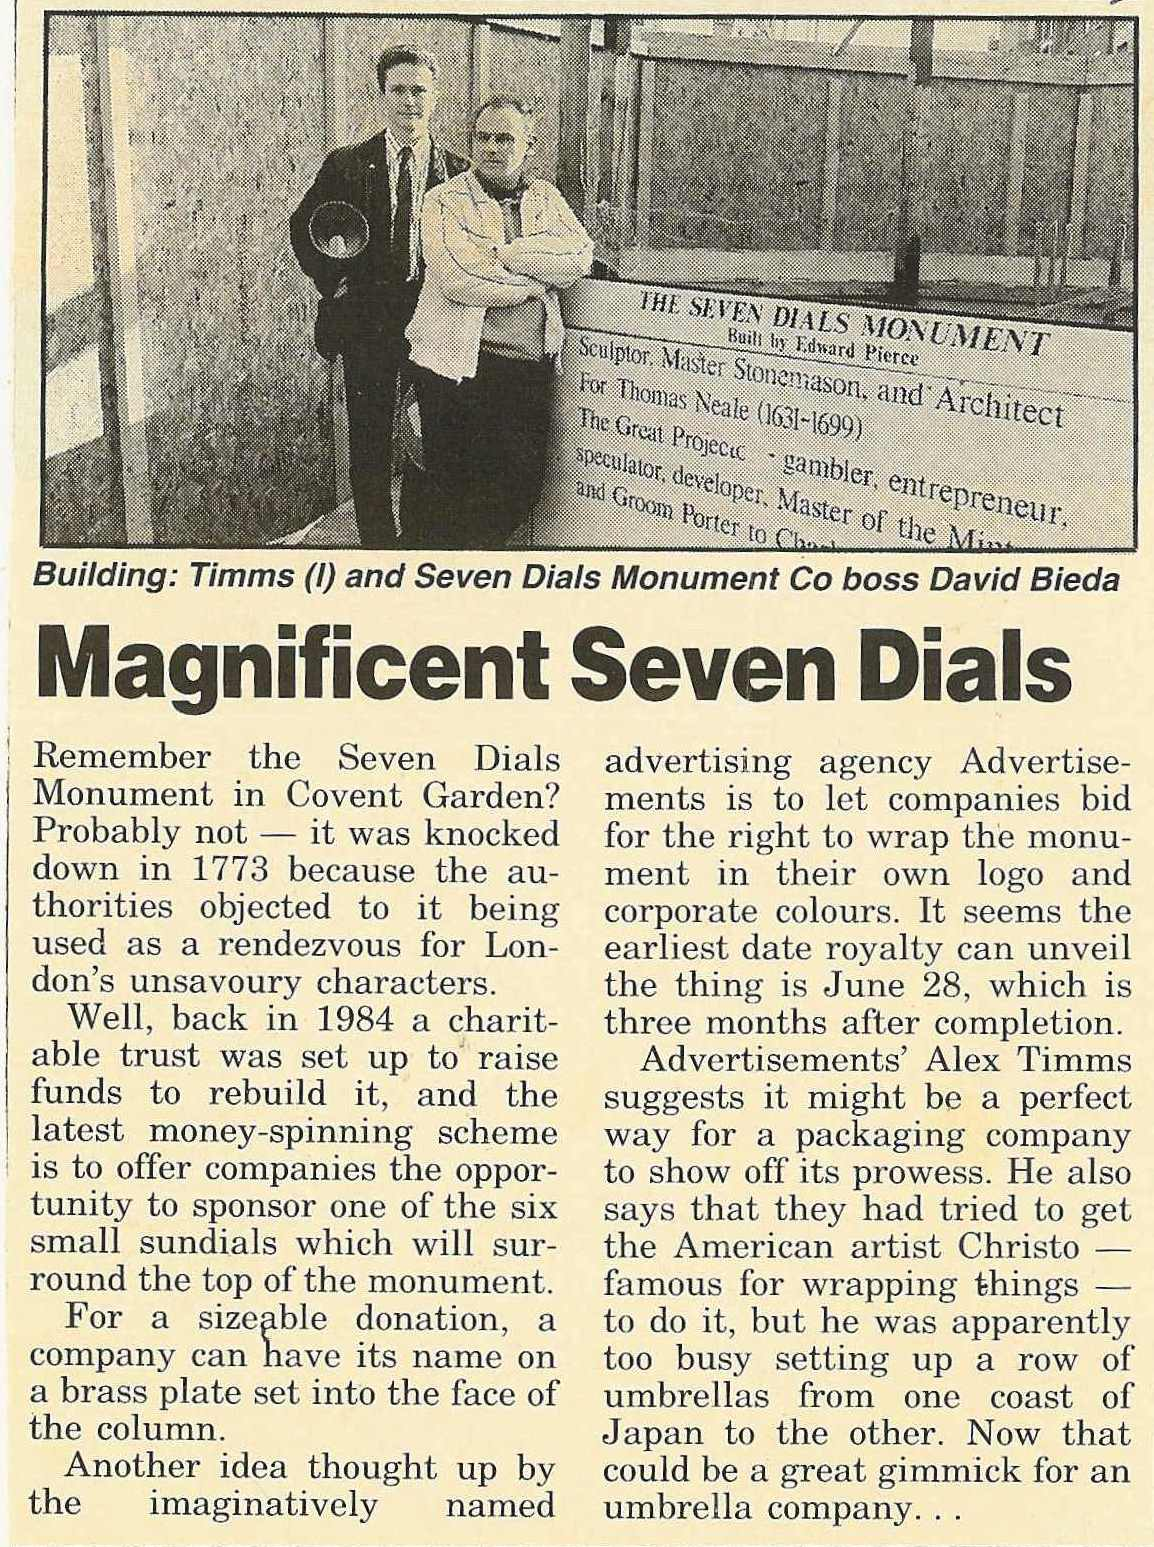 10 Jan. 1989 – Marketing Week: The Magnificent Seven Dials.